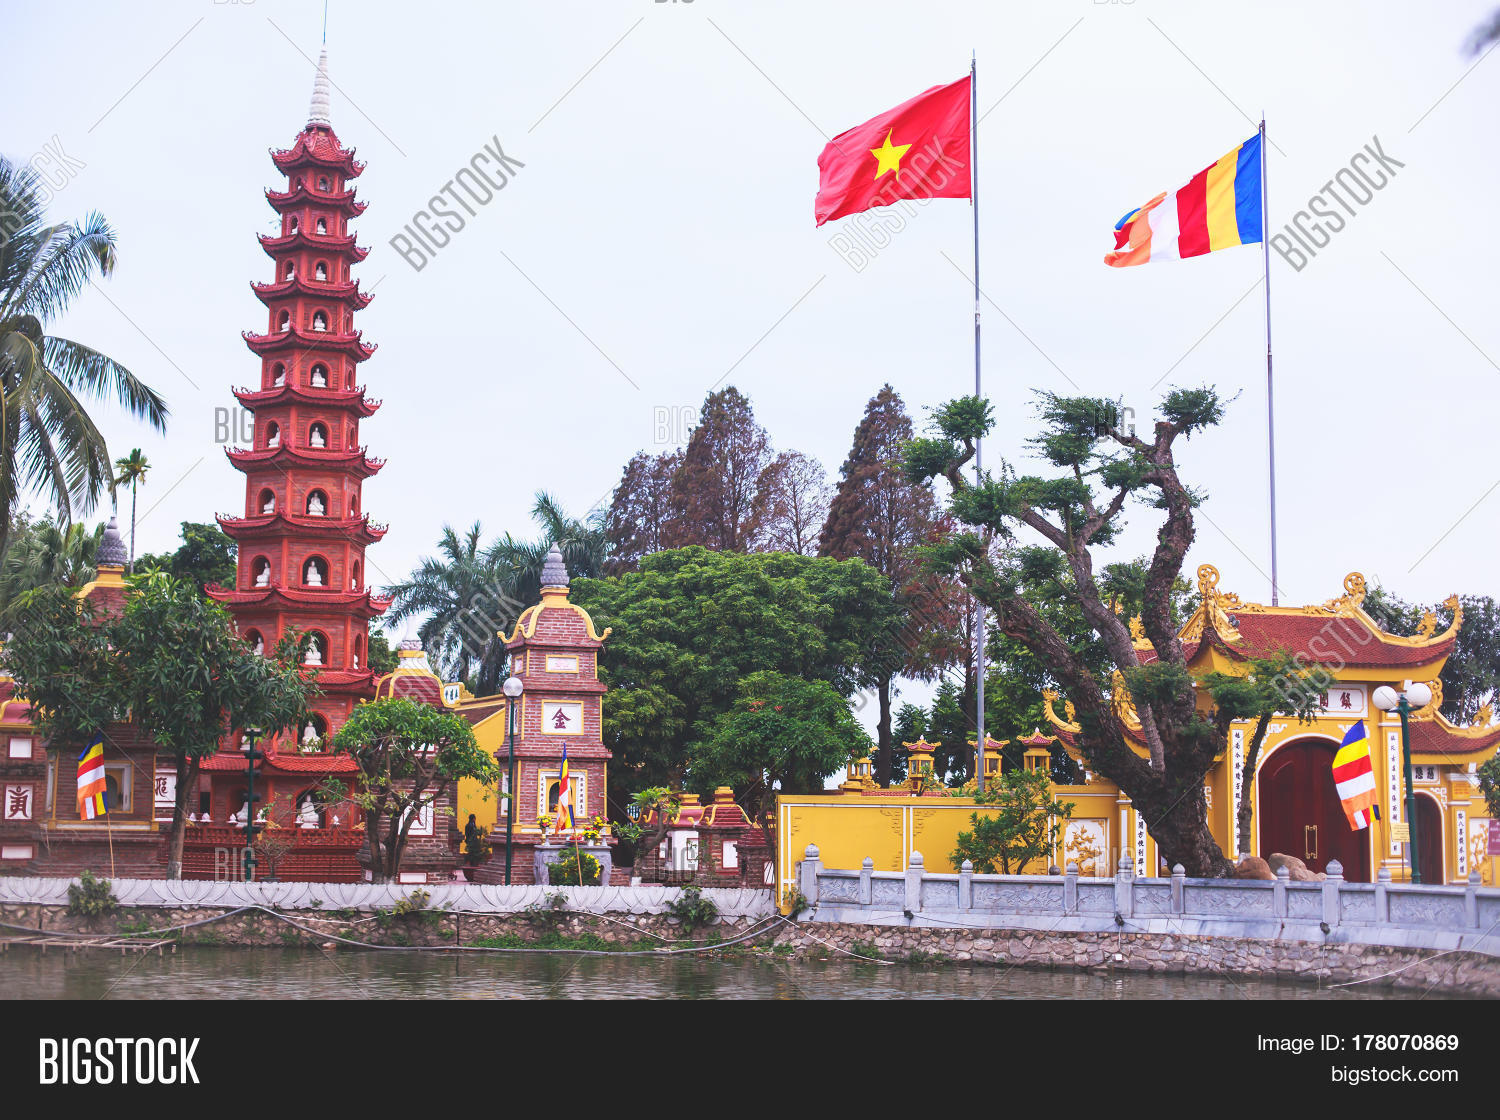 View Vietnam Capital Image Photo Free Trial Bigstock